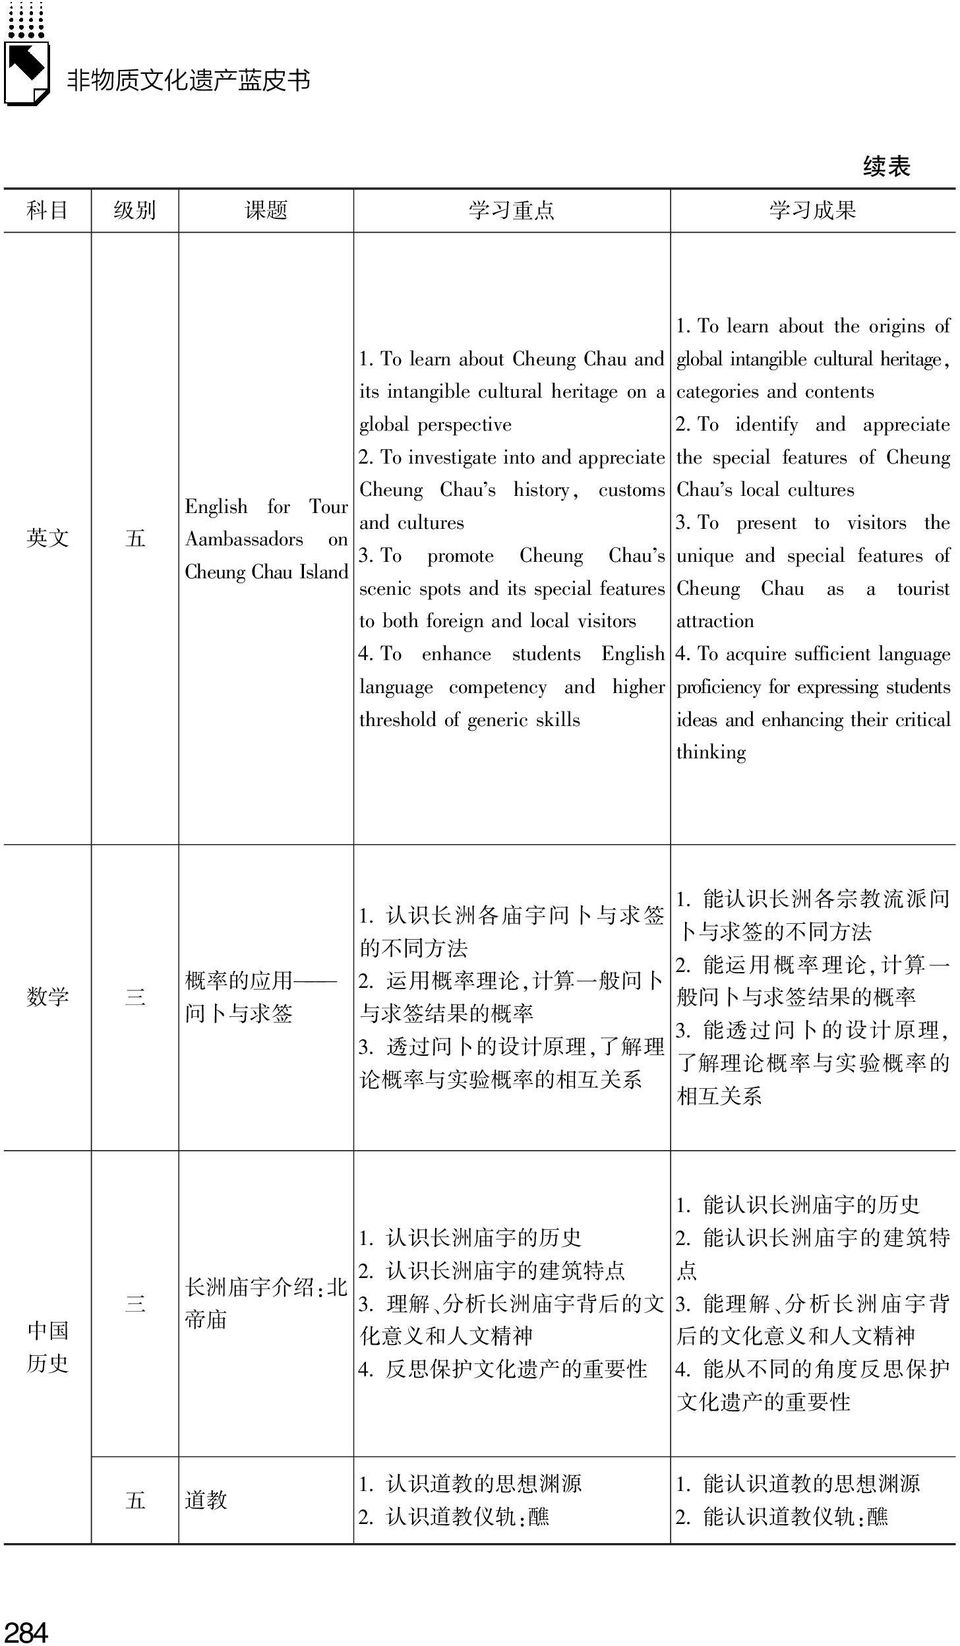 English for Tour and cultures 3 To present to visitors the Aambassadors on 3 To promote Cheung Chau s unique and special features of Cheung Chau Island scenic spots and its special features Cheung